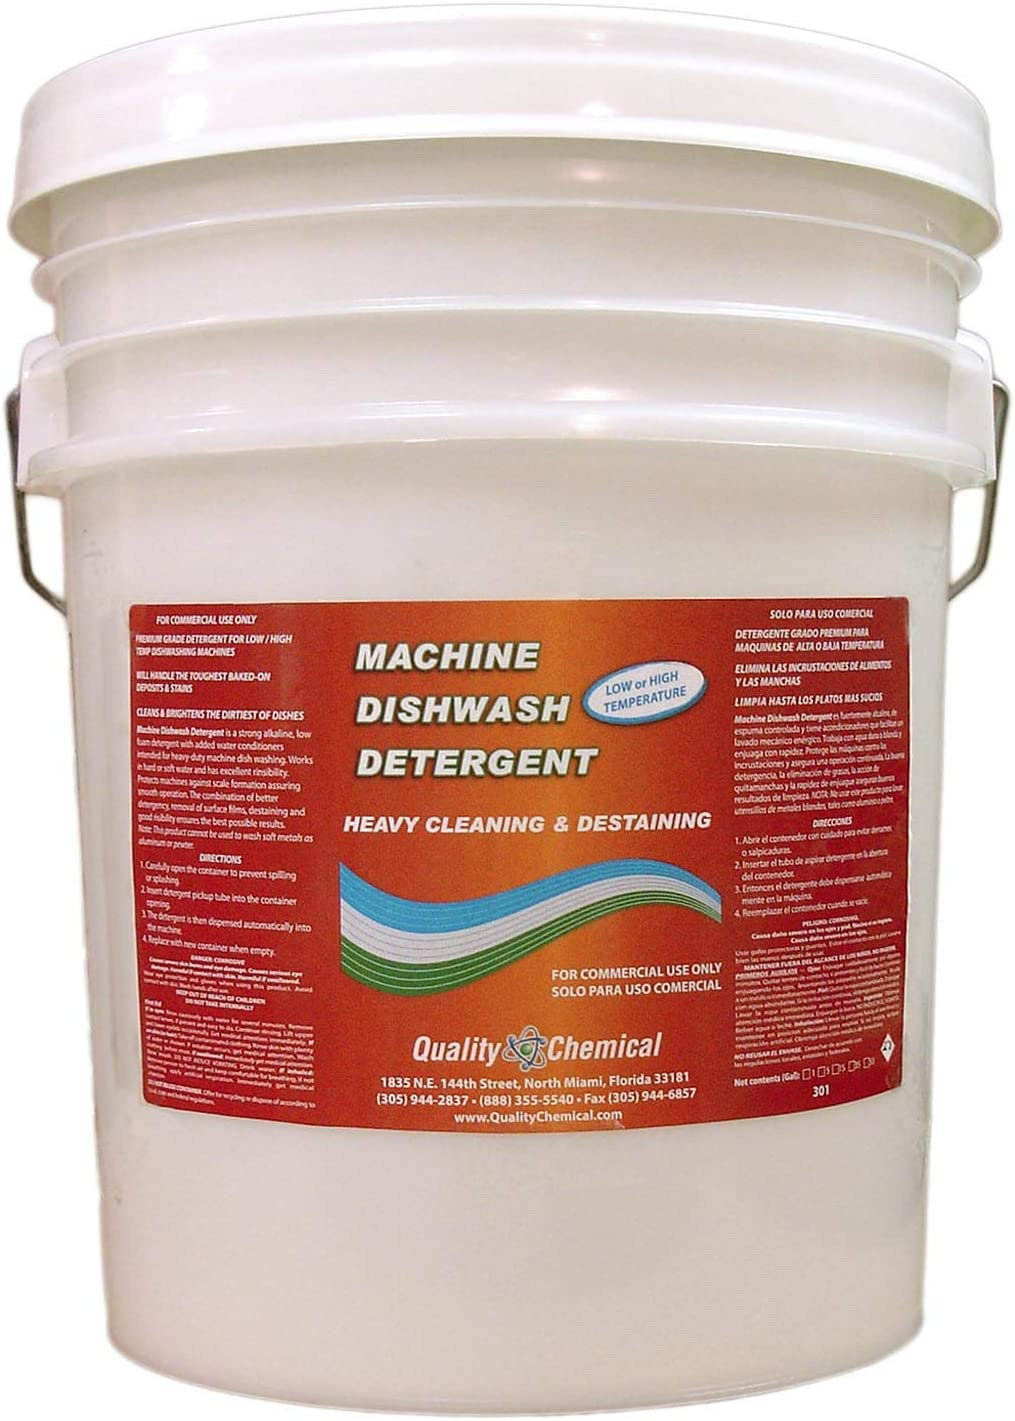 Commercial Industrial Grade Machine Dishwash - Premi Detergent A In a popularity 100% quality warranty!